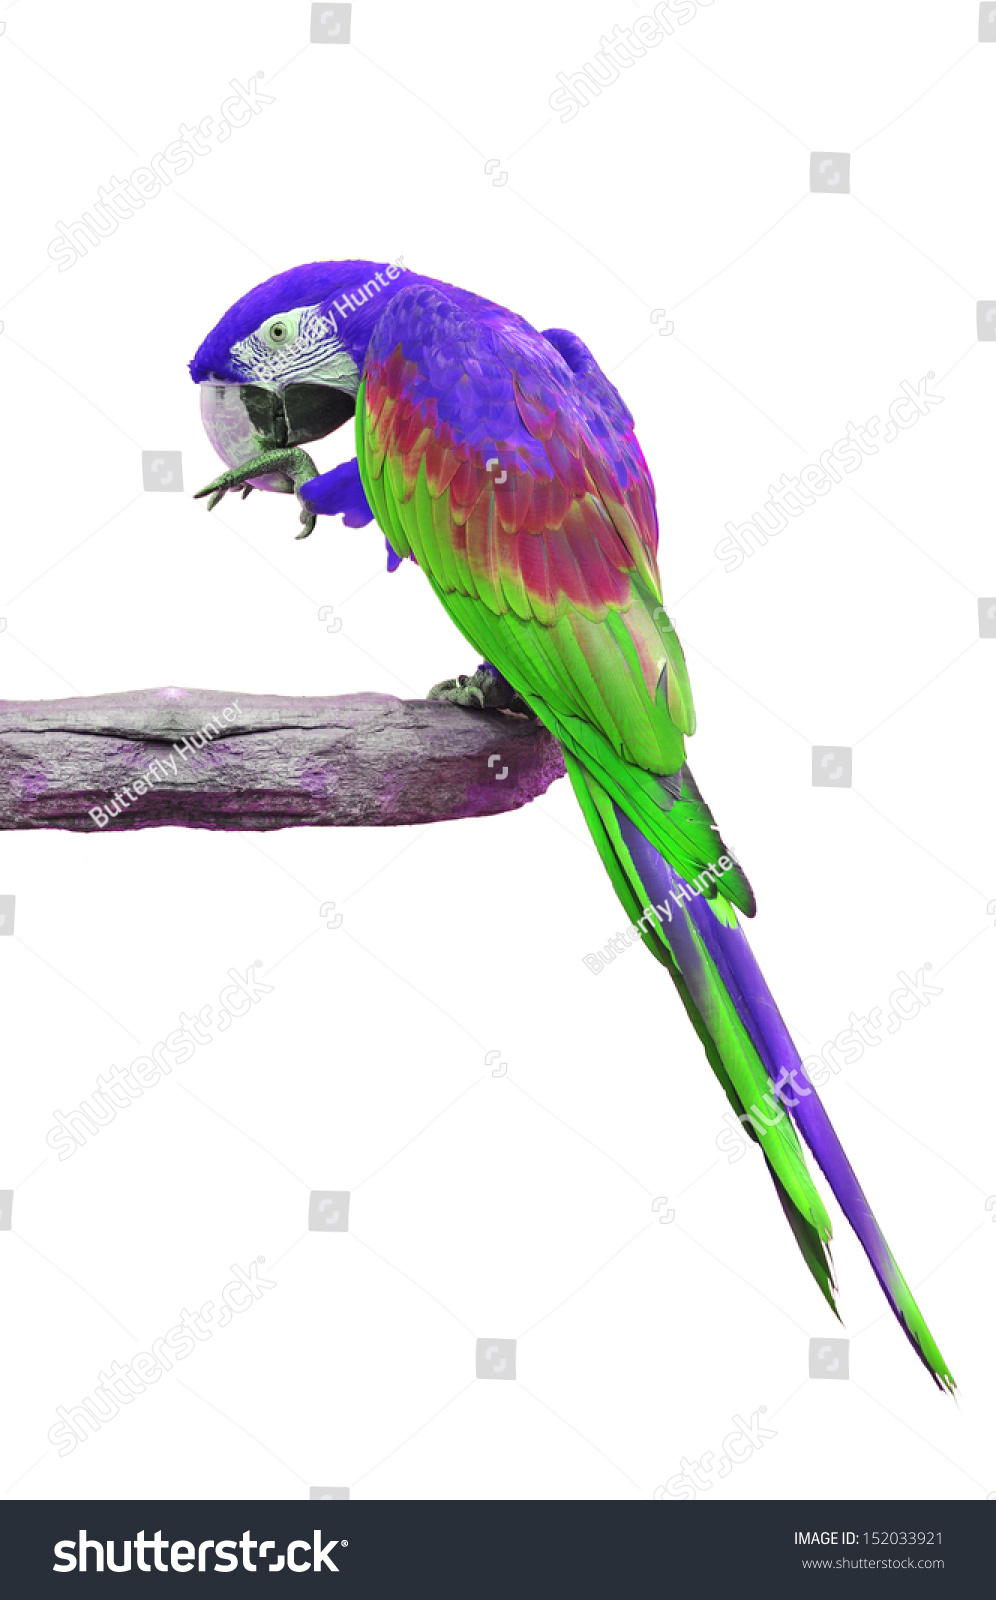 colorful purple and green macaw isolated on white background ez canvas